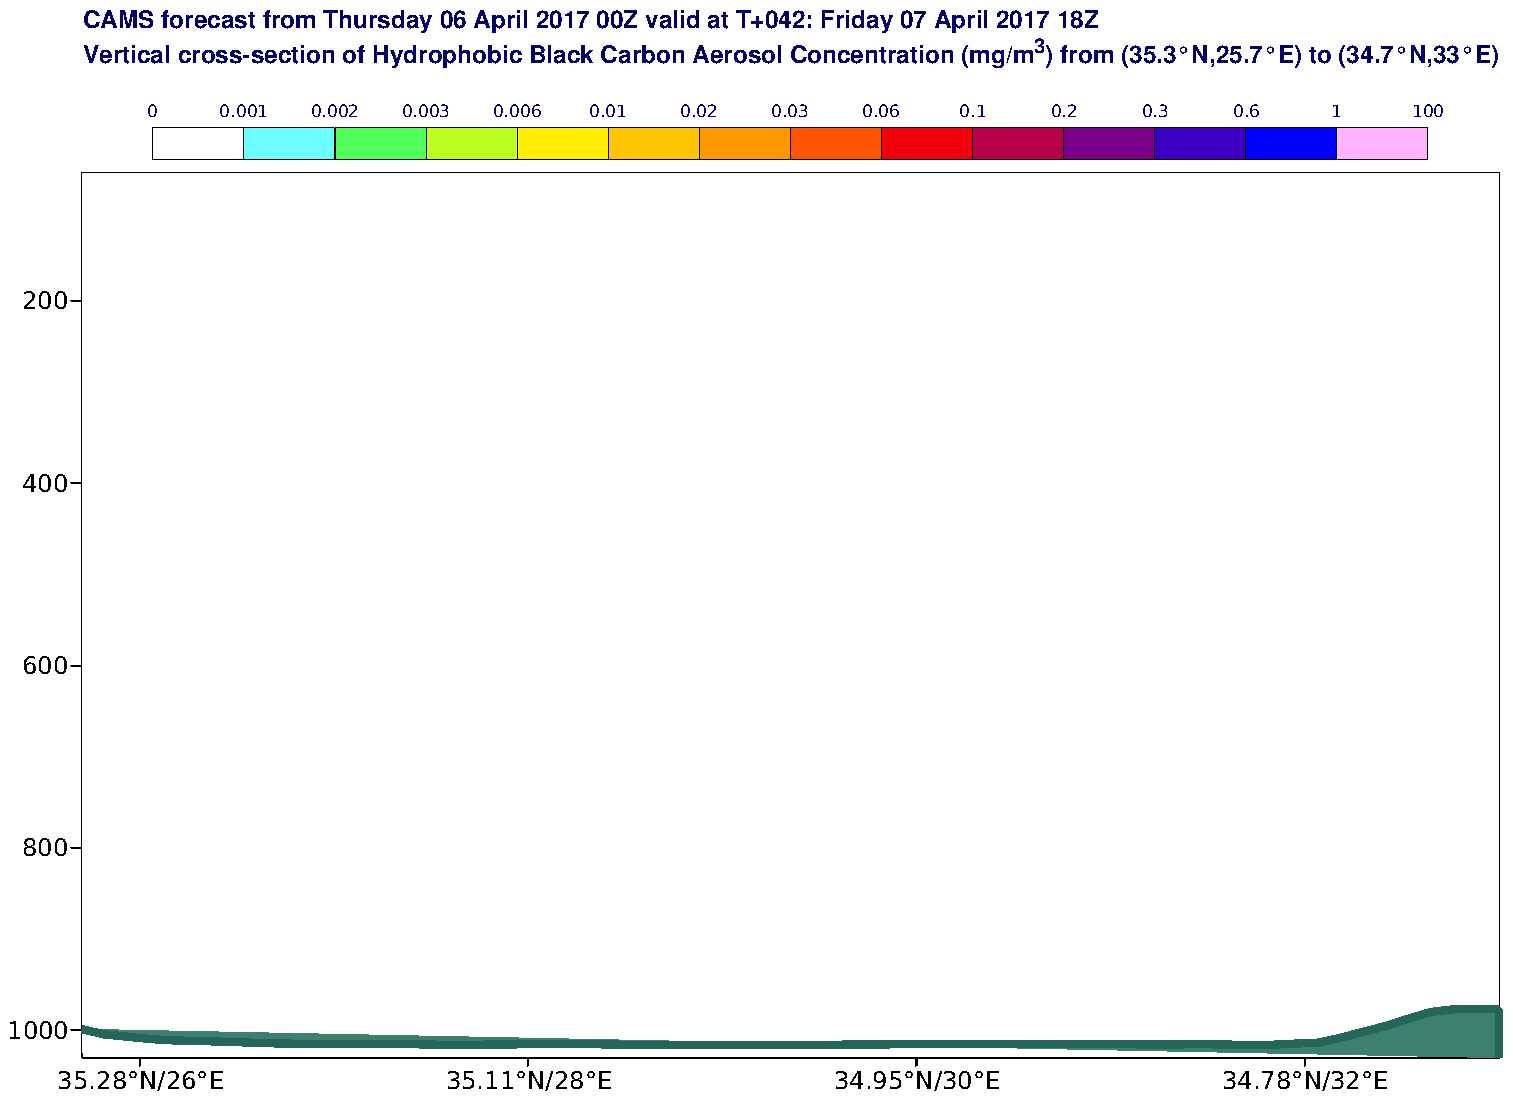 Vertical cross-section of Hydrophobic Black Carbon Aerosol Concentration (mg/m3) valid at T42 - 2017-04-07 18:00